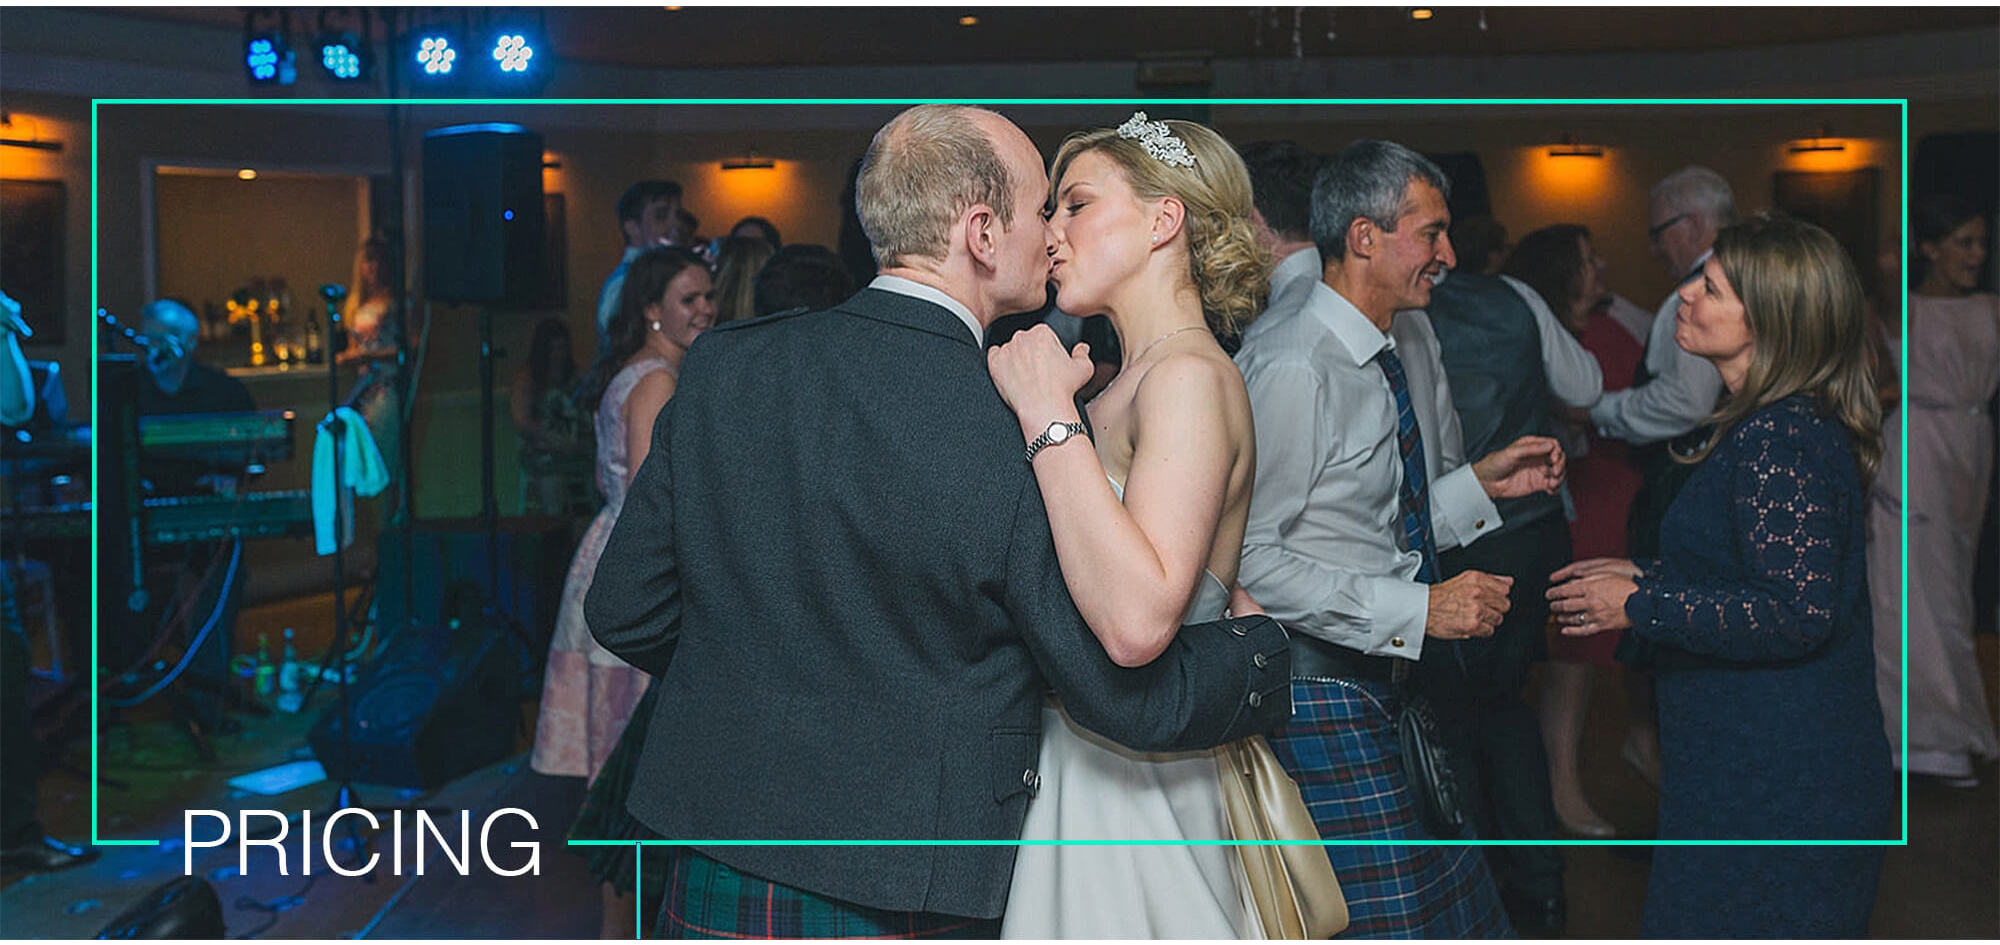 full-day-wedding-photography-pricing